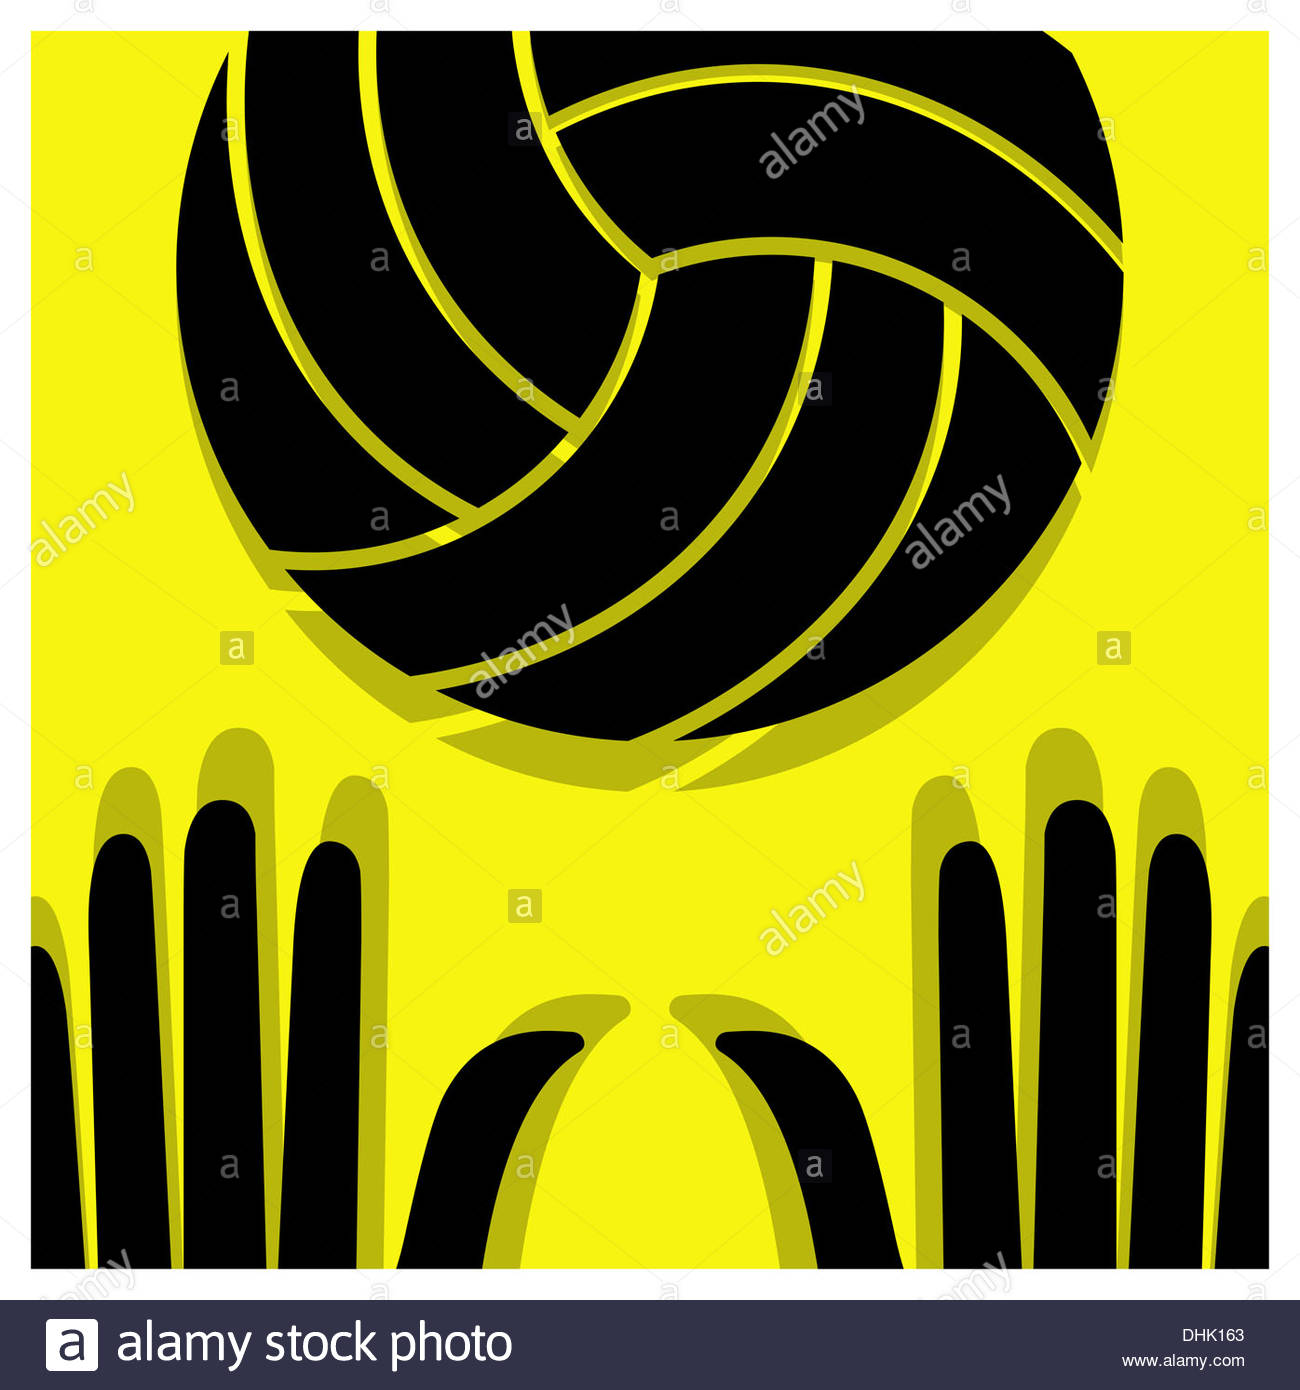 volleyball pictogram - Stock Image